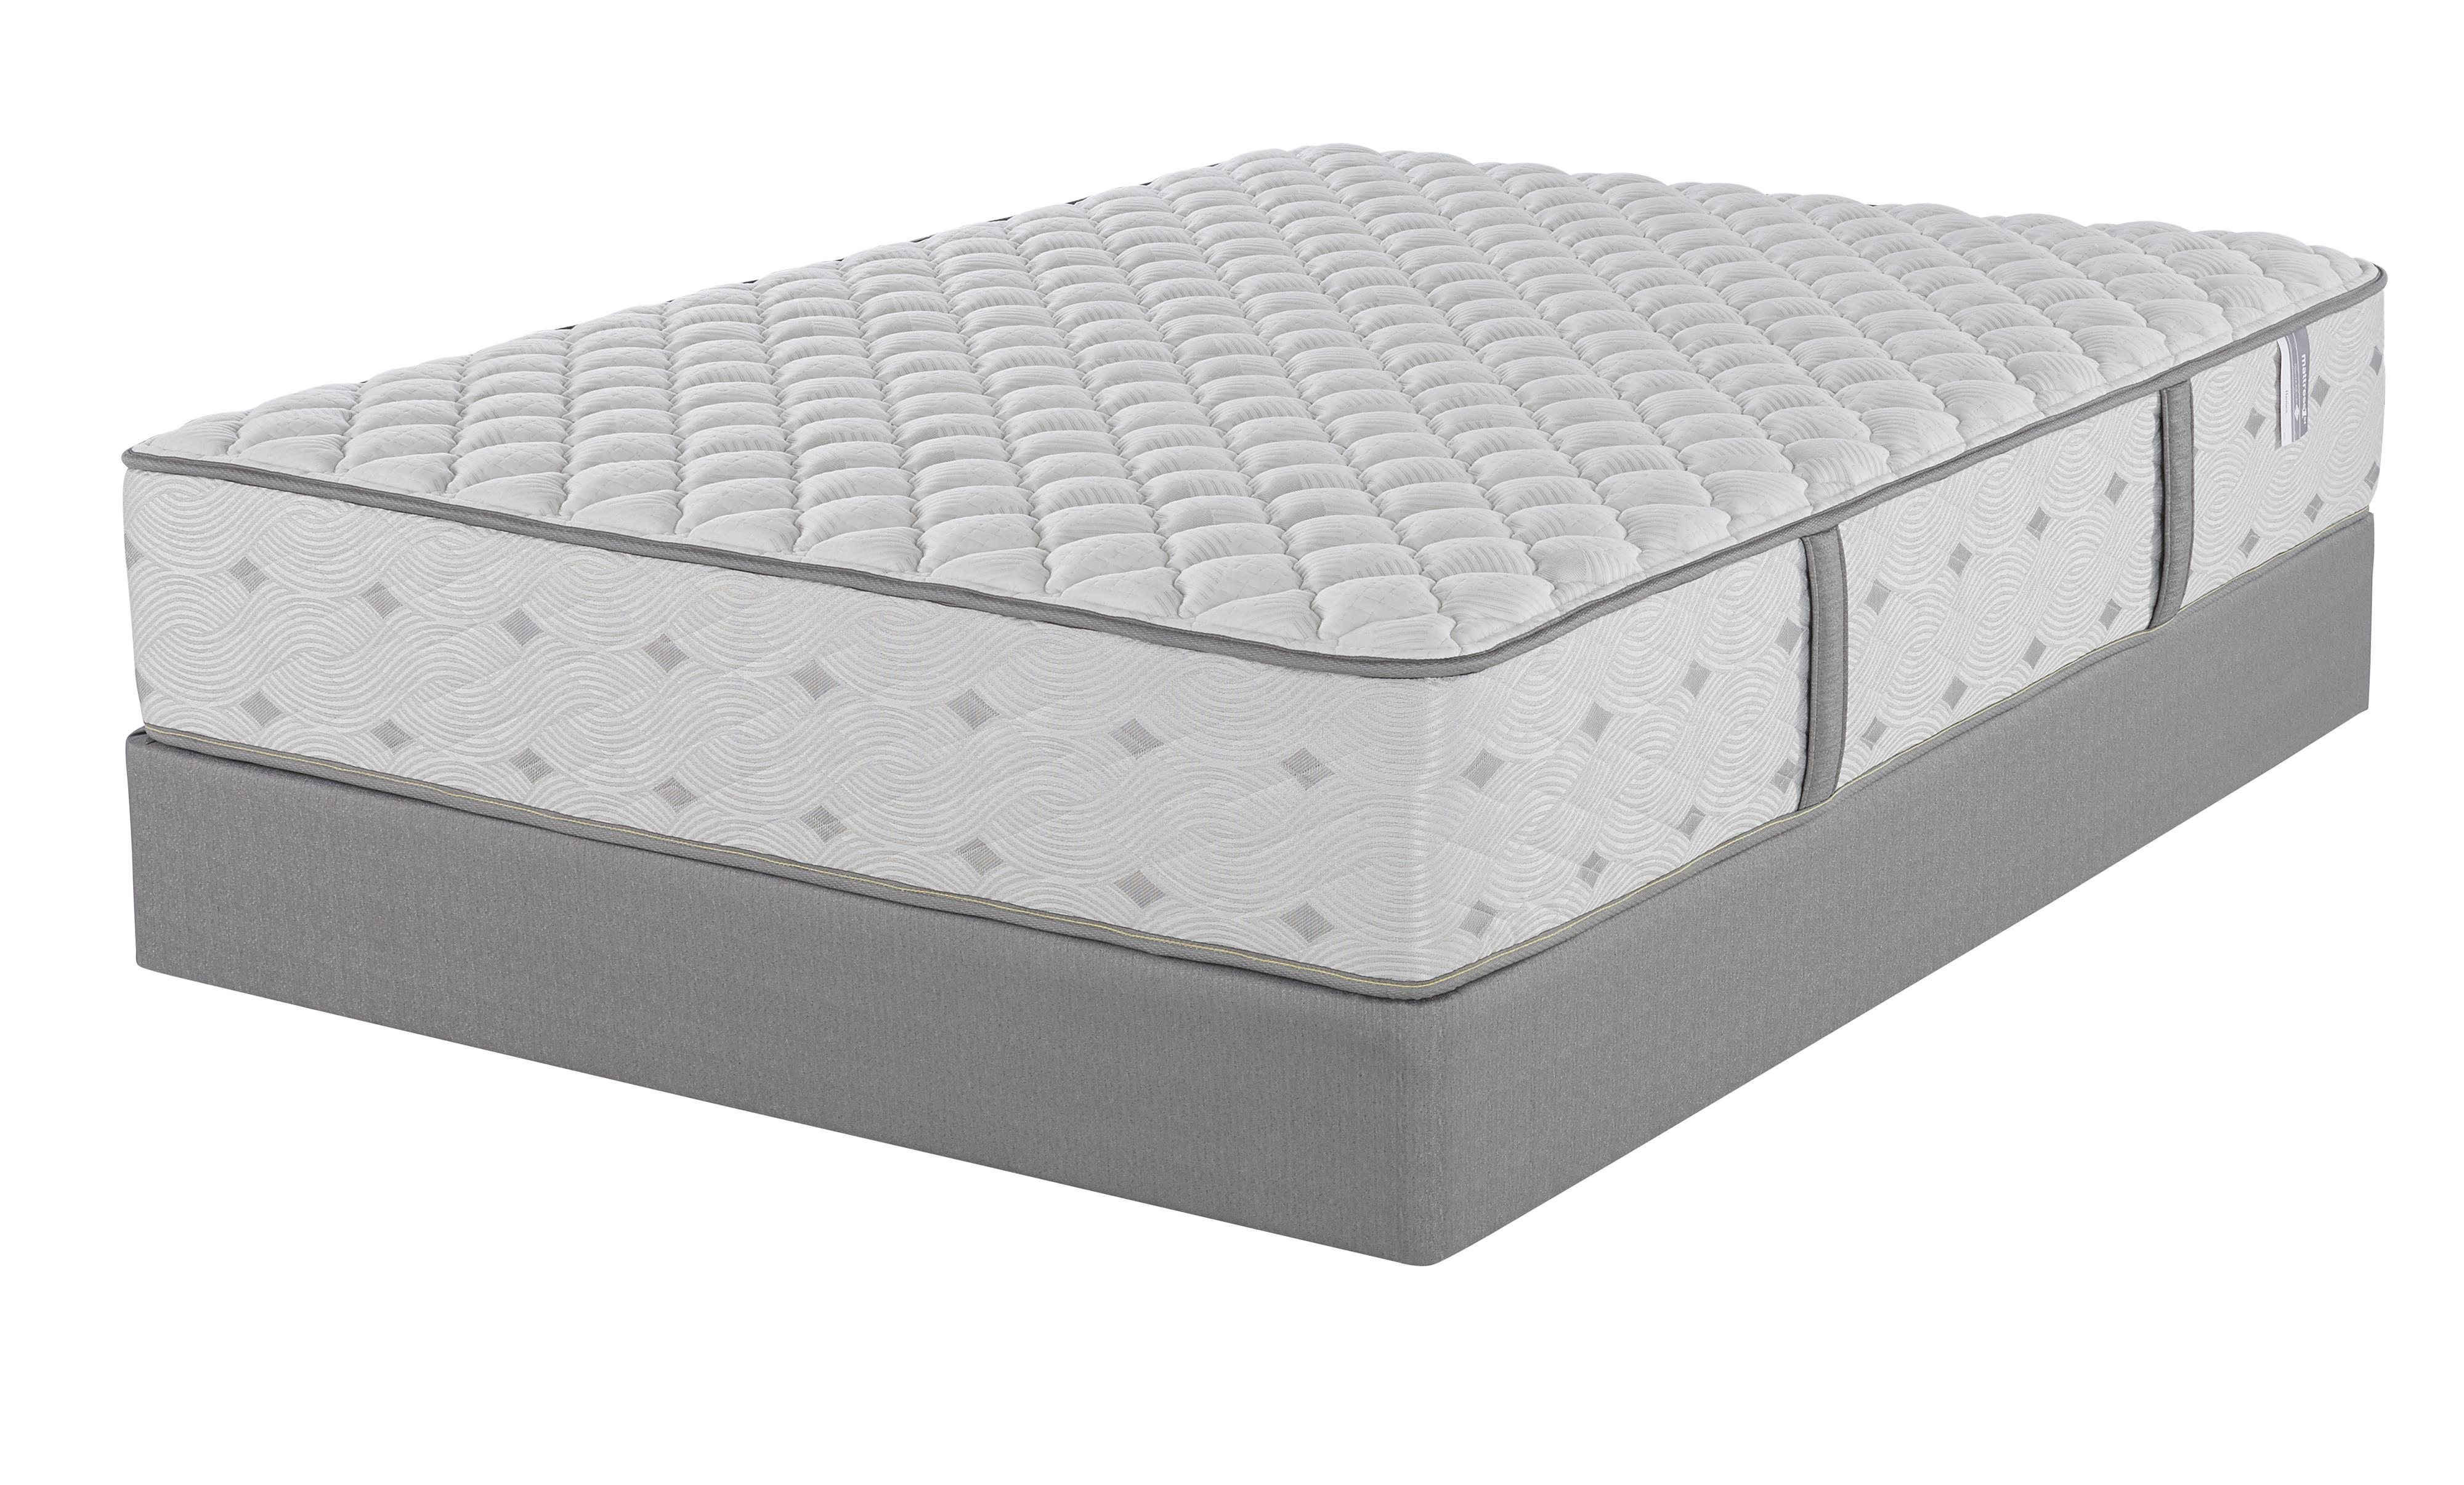 Belfort Mattress Harrison Firm Mattress - Item Number: 500955541K